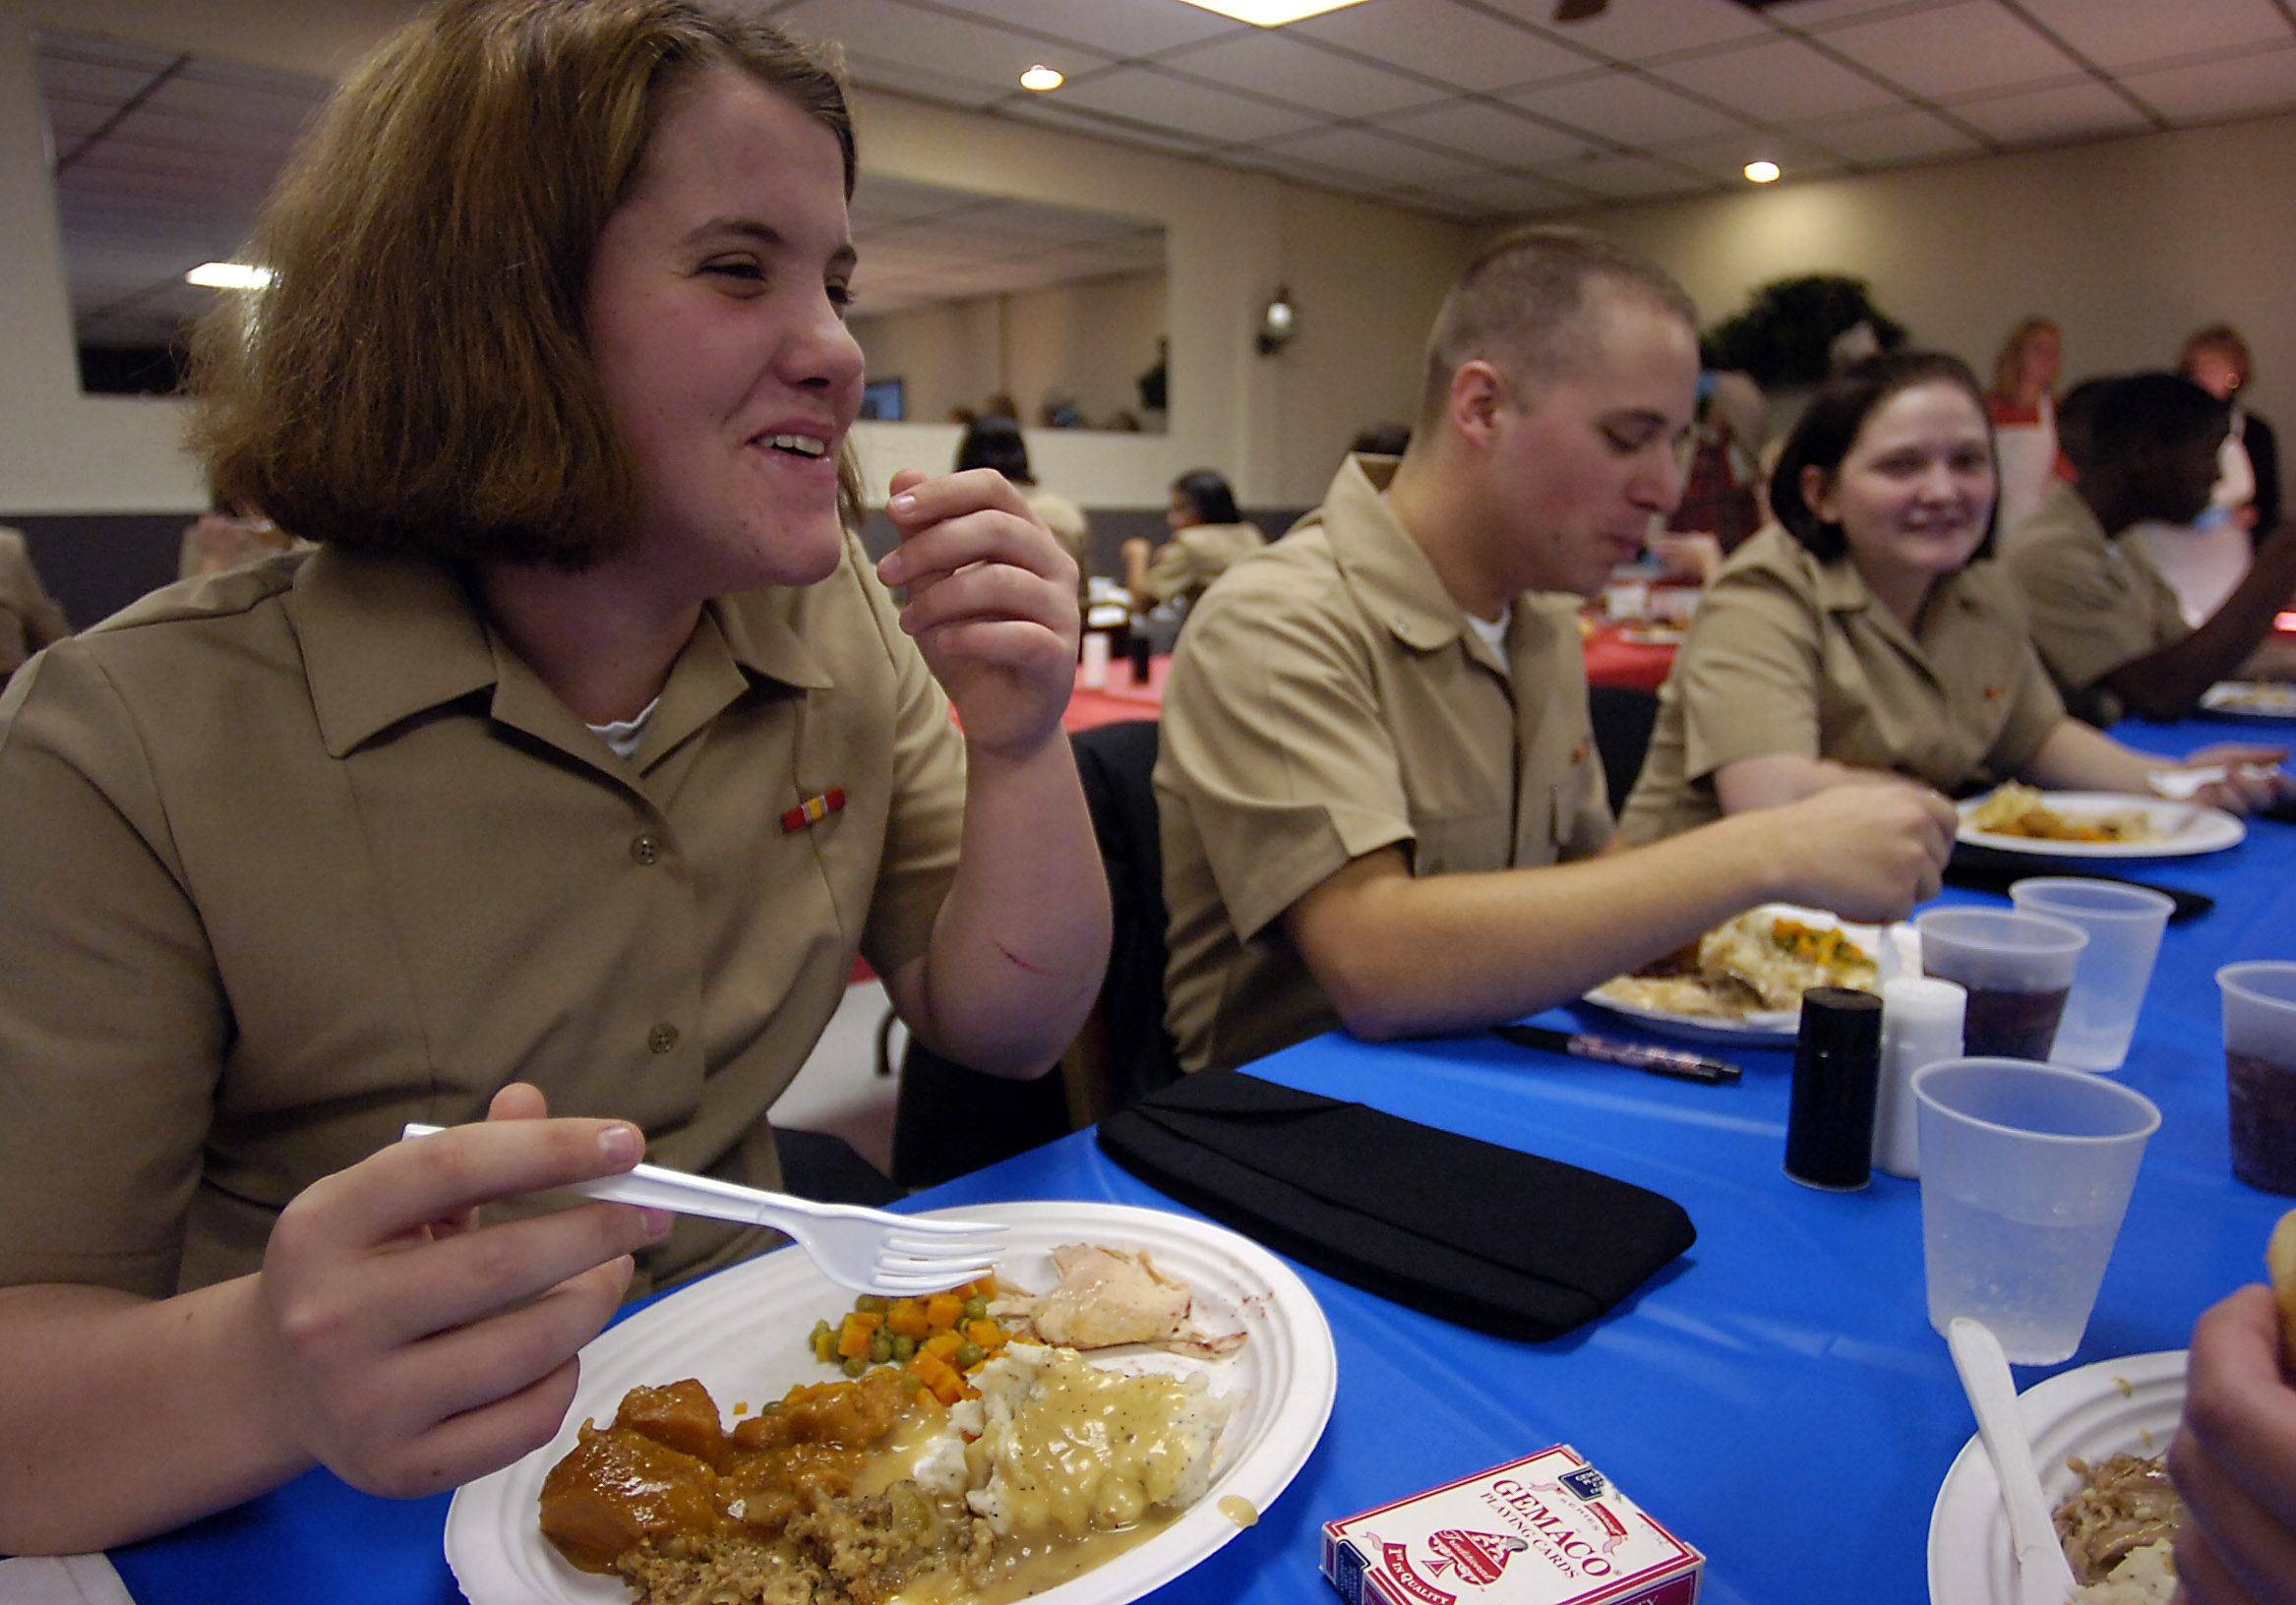 Seaman Recruit Nicole Southard, 18, of Portland, Maine eats with her fellow recruits at Amvets Post 66 in Wheeling for their Thanksgiving holiday.